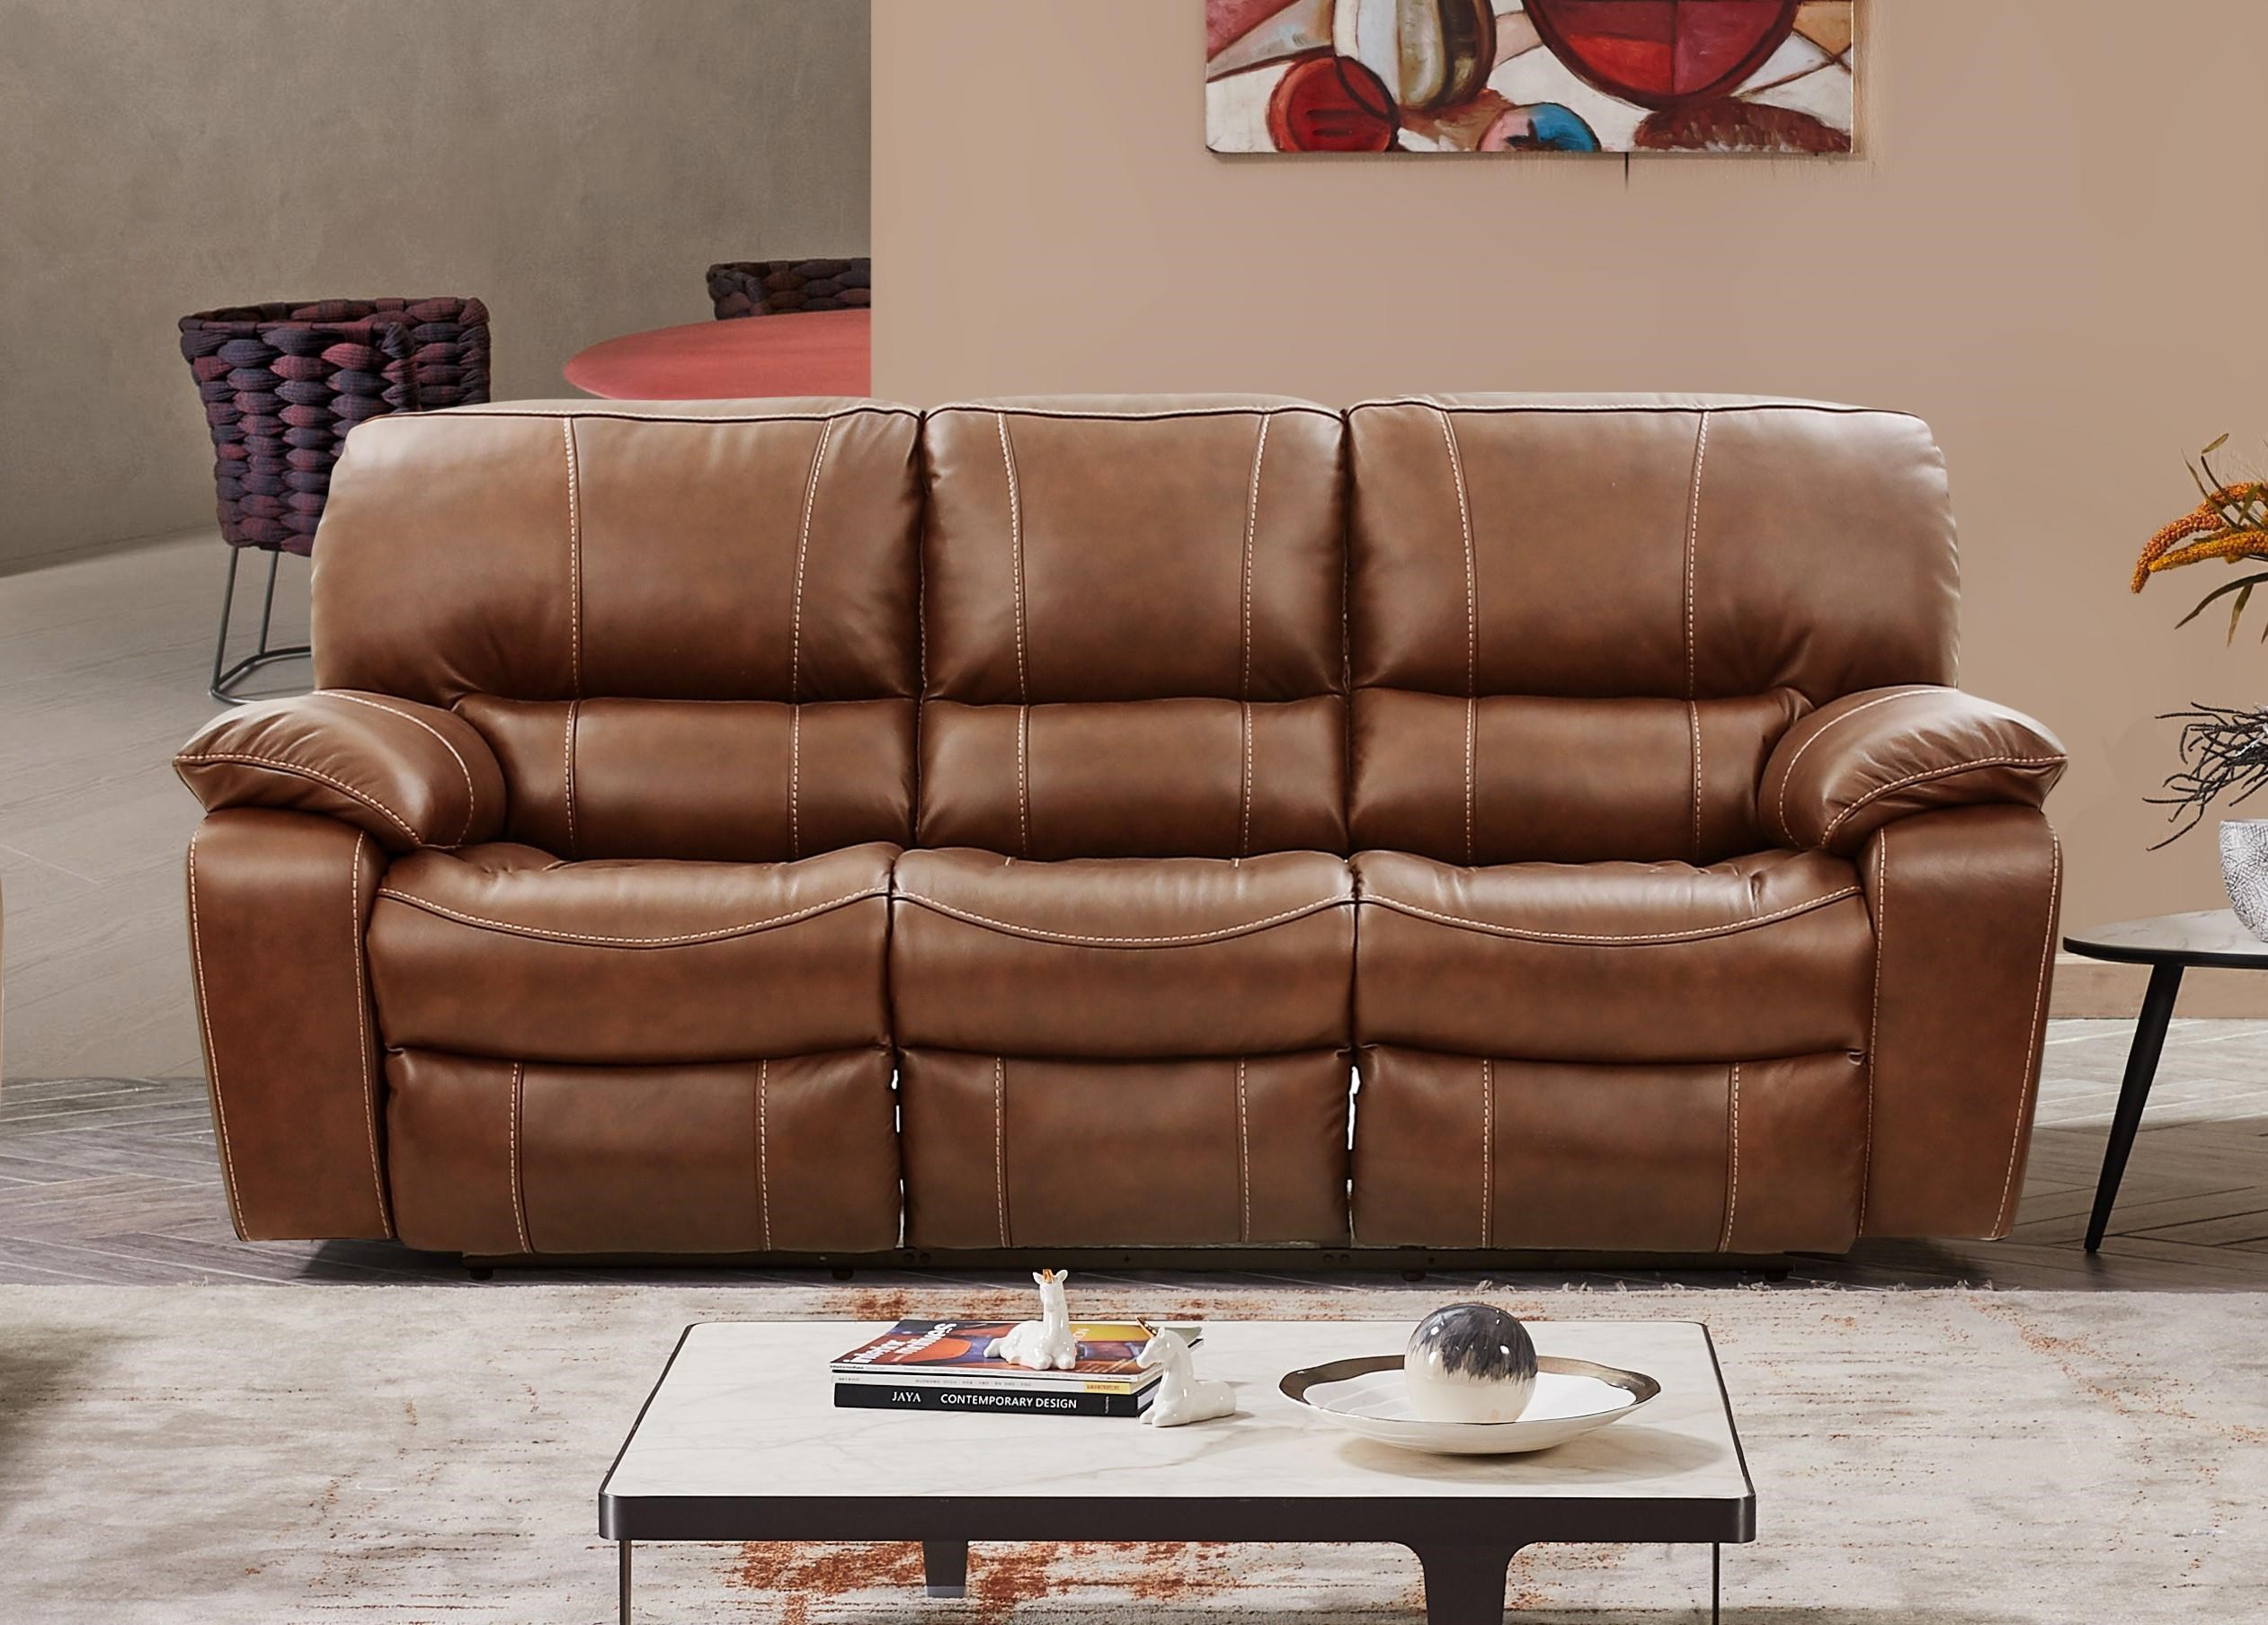 UX8625M DUAL POWER RECLINING LEATHER SOFA by Cheers at Furniture Fair - North Carolina